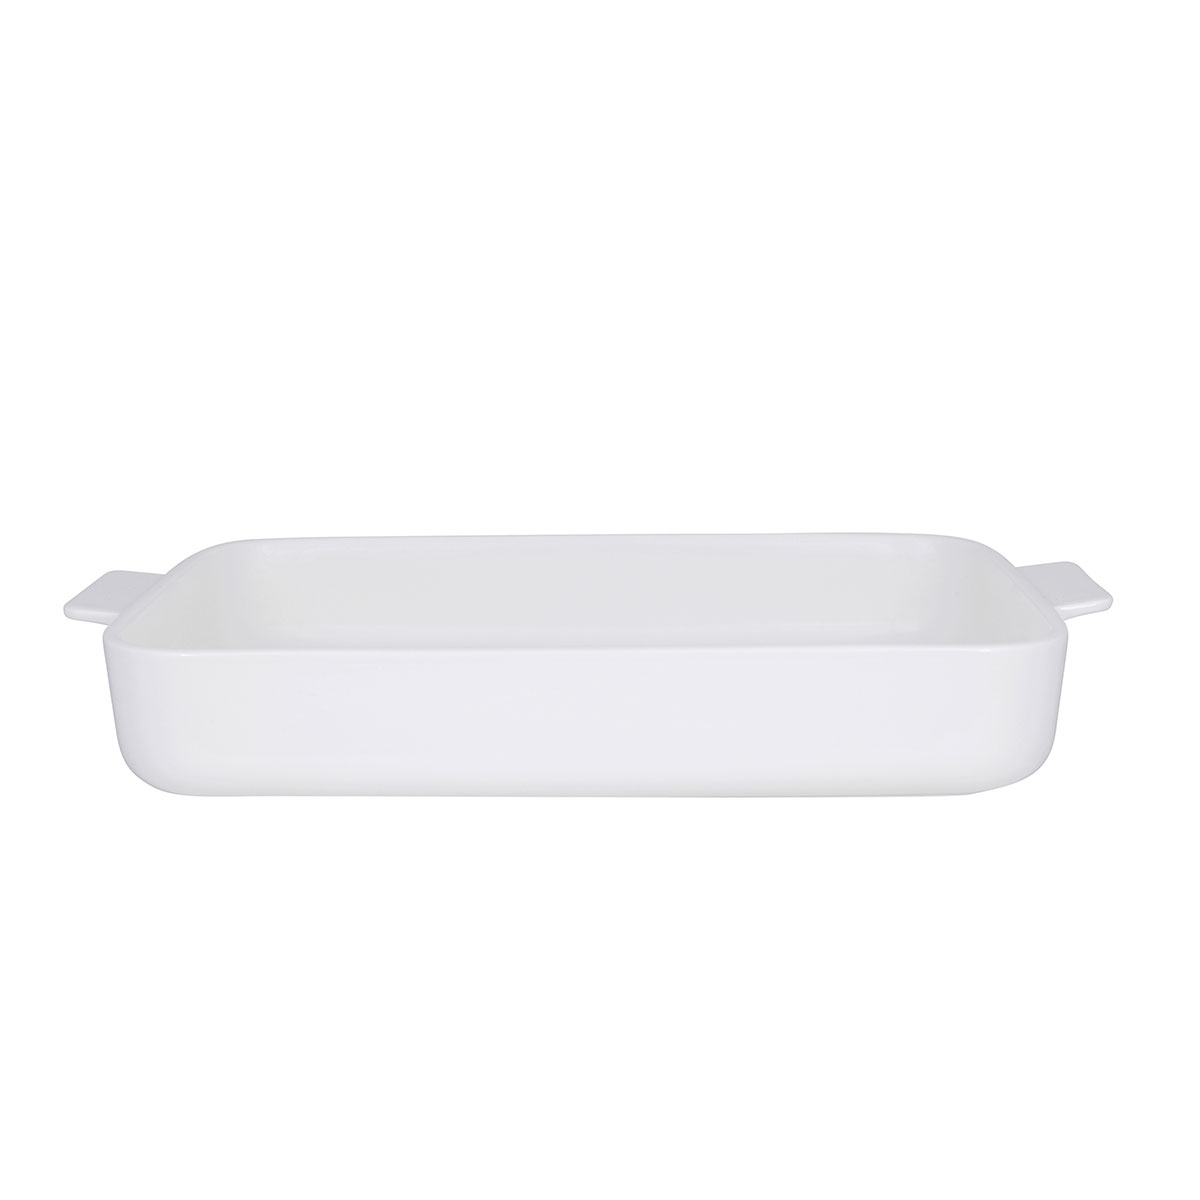 Clever Cooking Rectan.baking dish34x24cm